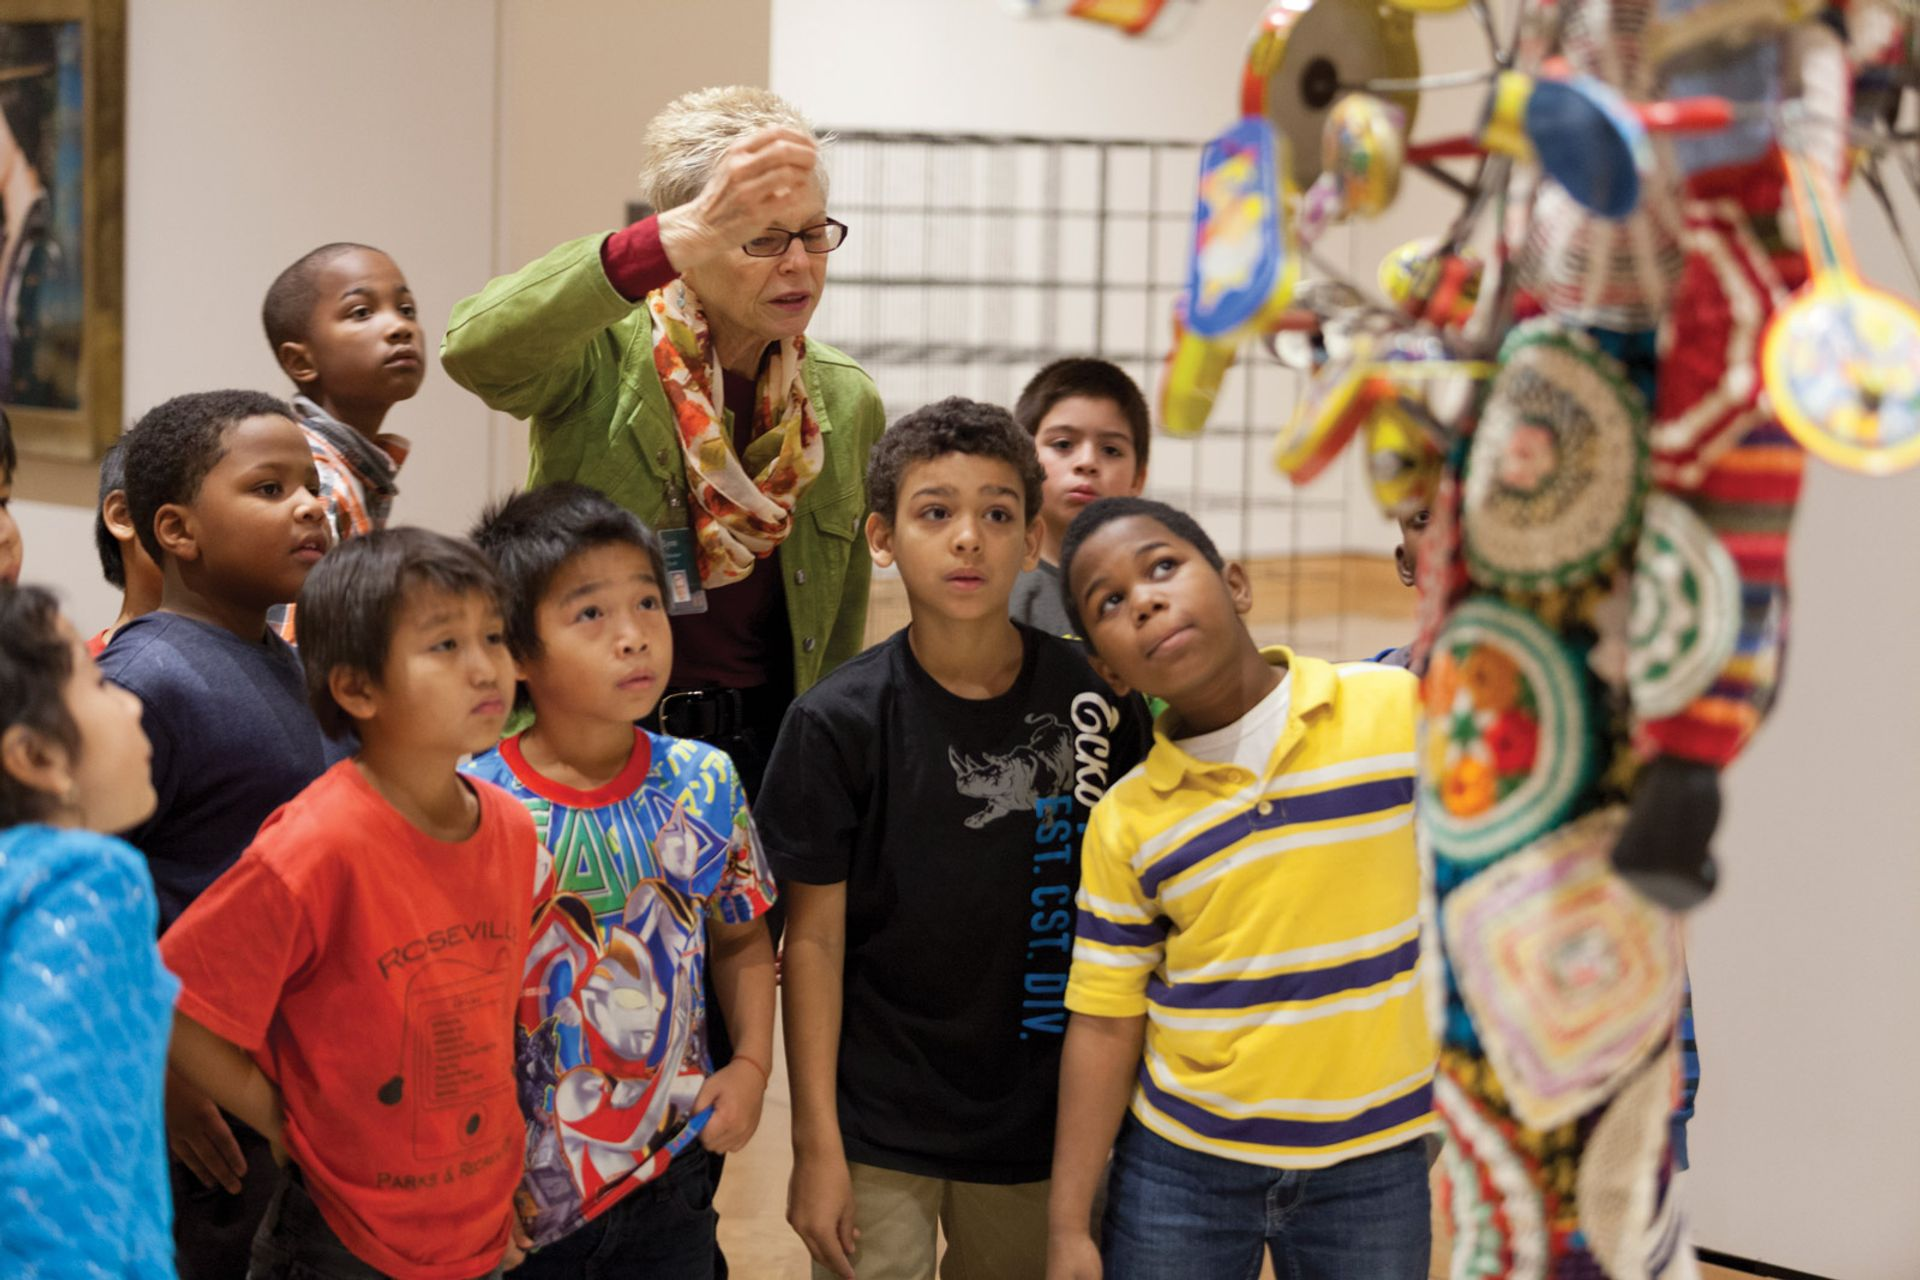 Museum leadership rarely reflects actual demographics. Above, children at the Minneapolis Institute of Art 013 Minneapolis Institute of Arts